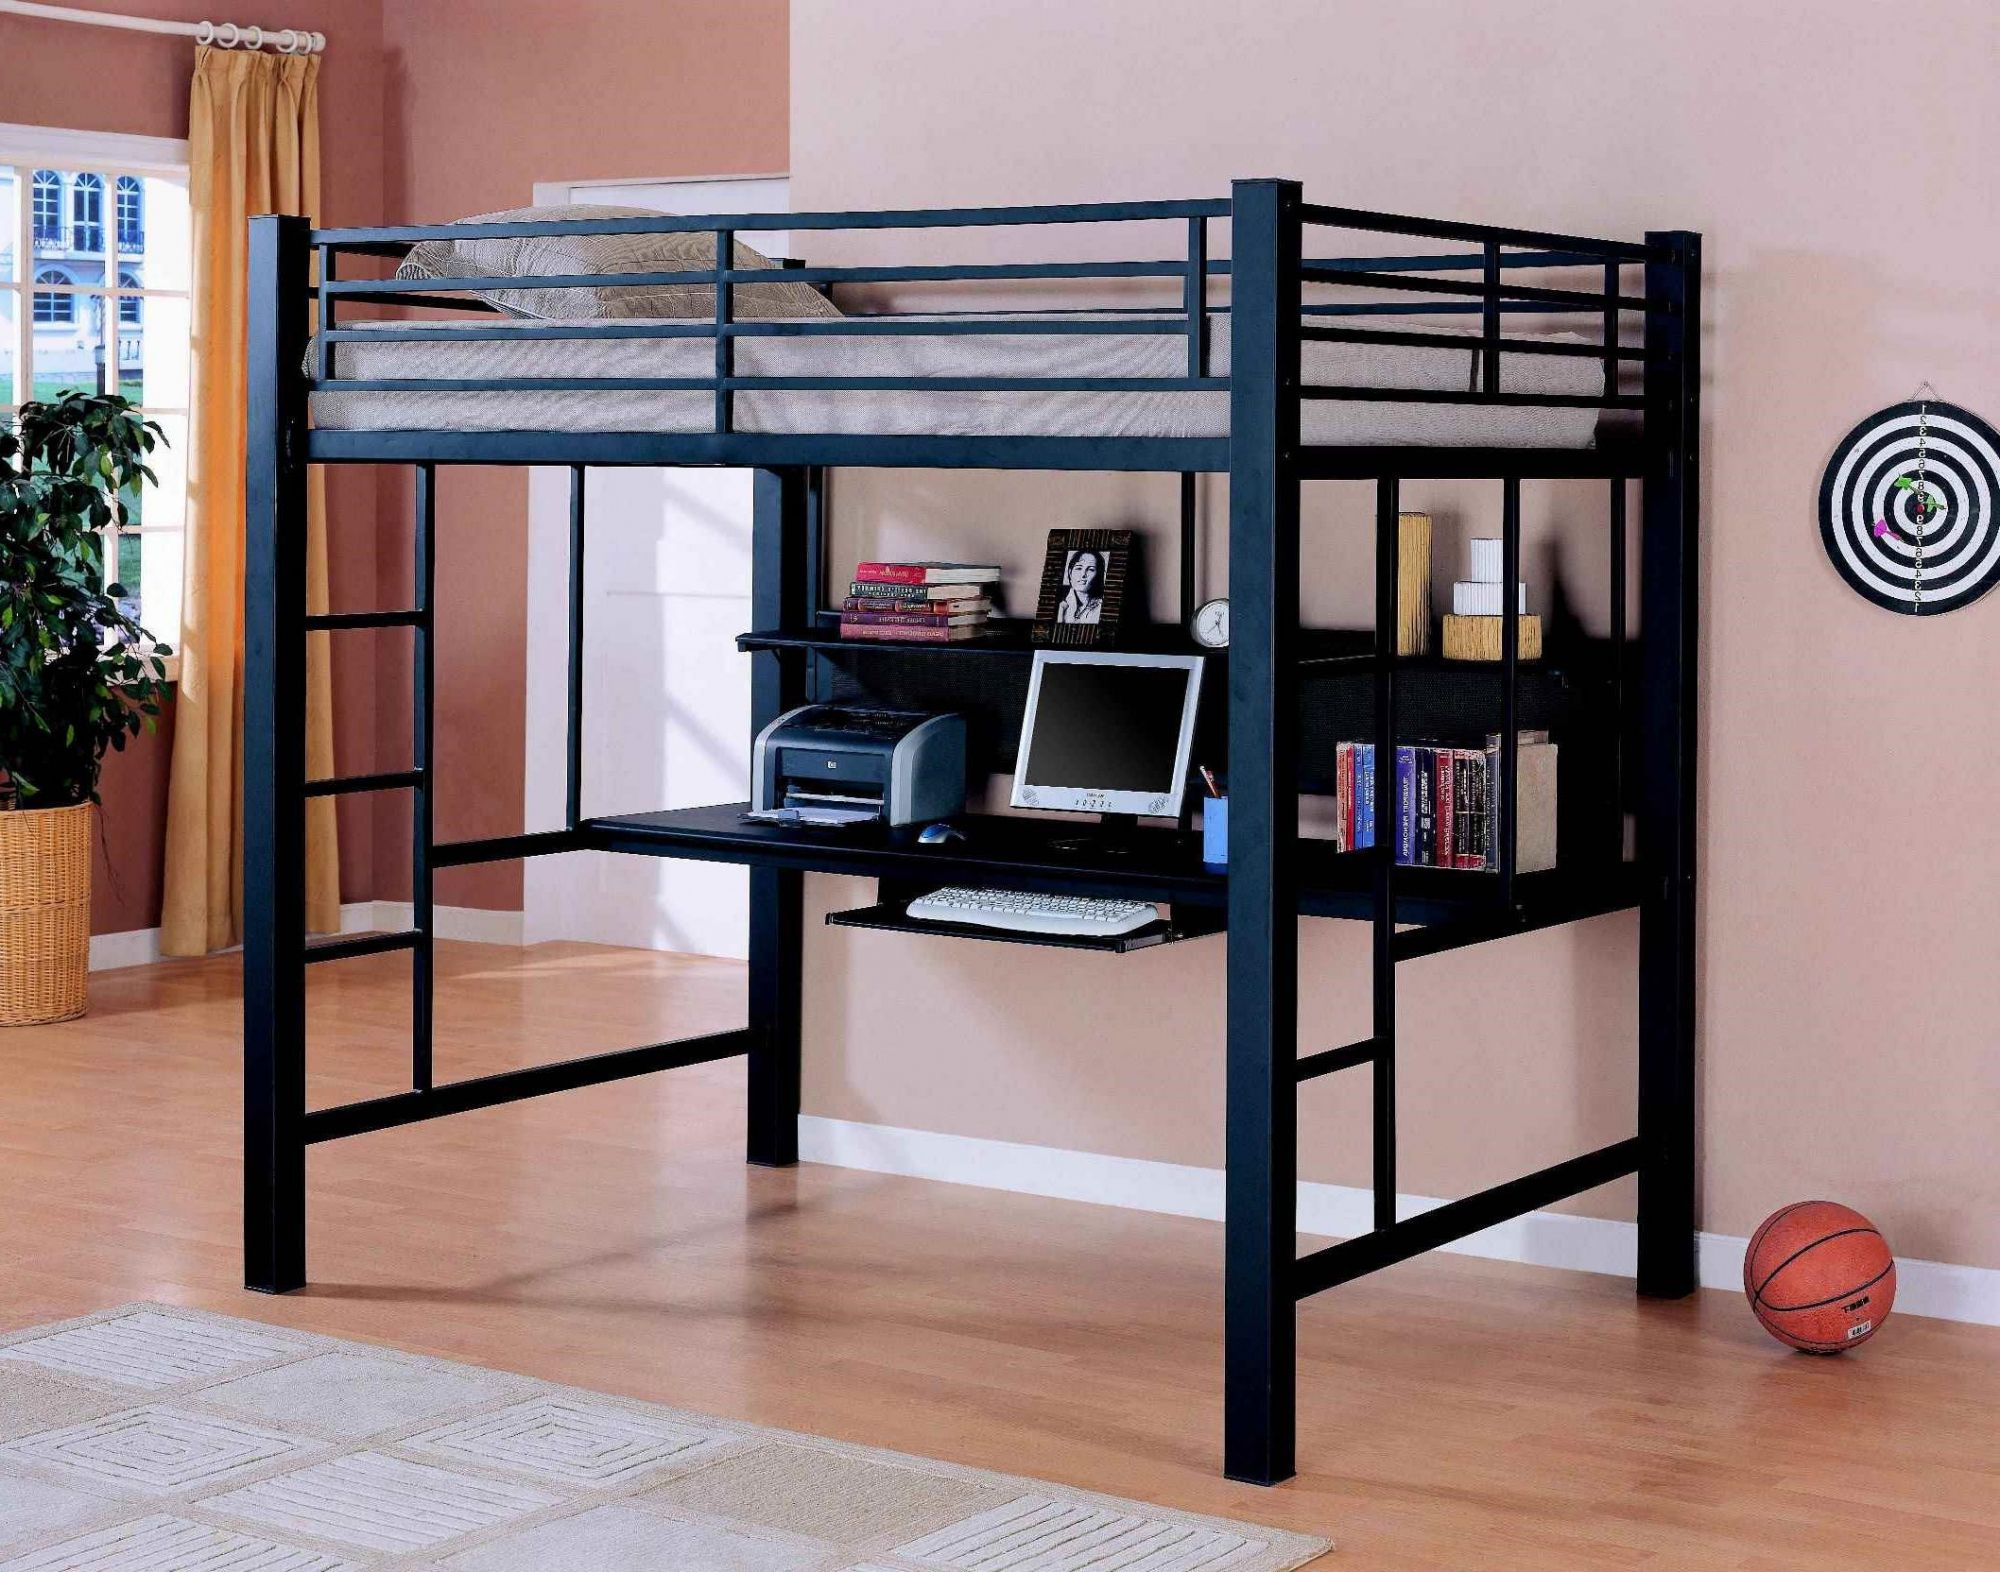 Pin by Annora on home interior | Bunk bed with desk, Loft ...